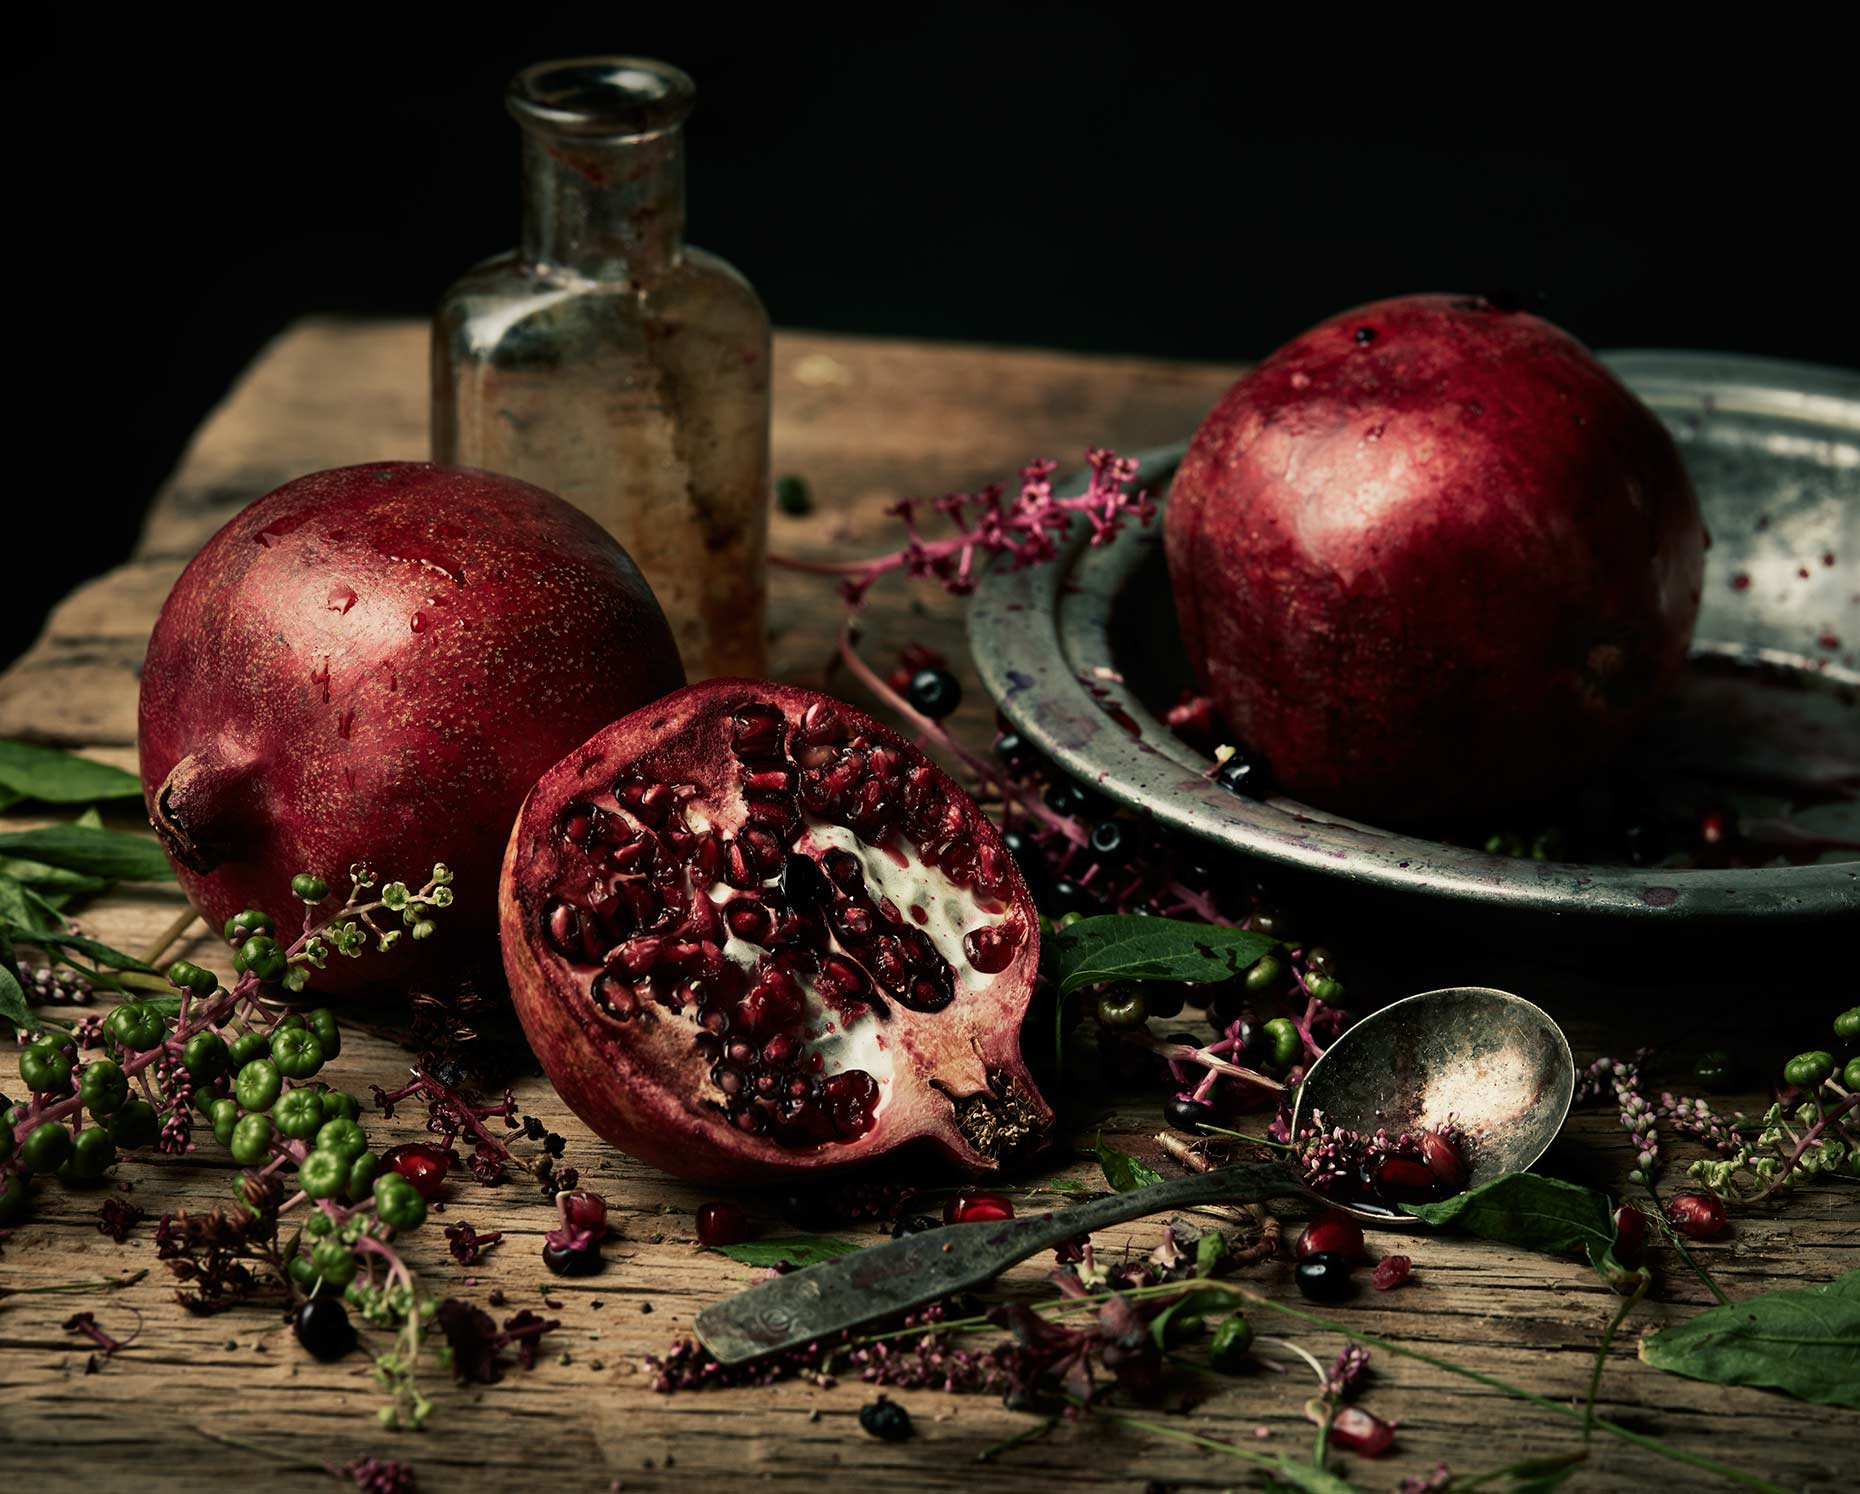 Still life photography featuring a pomegranate and metal dishes.